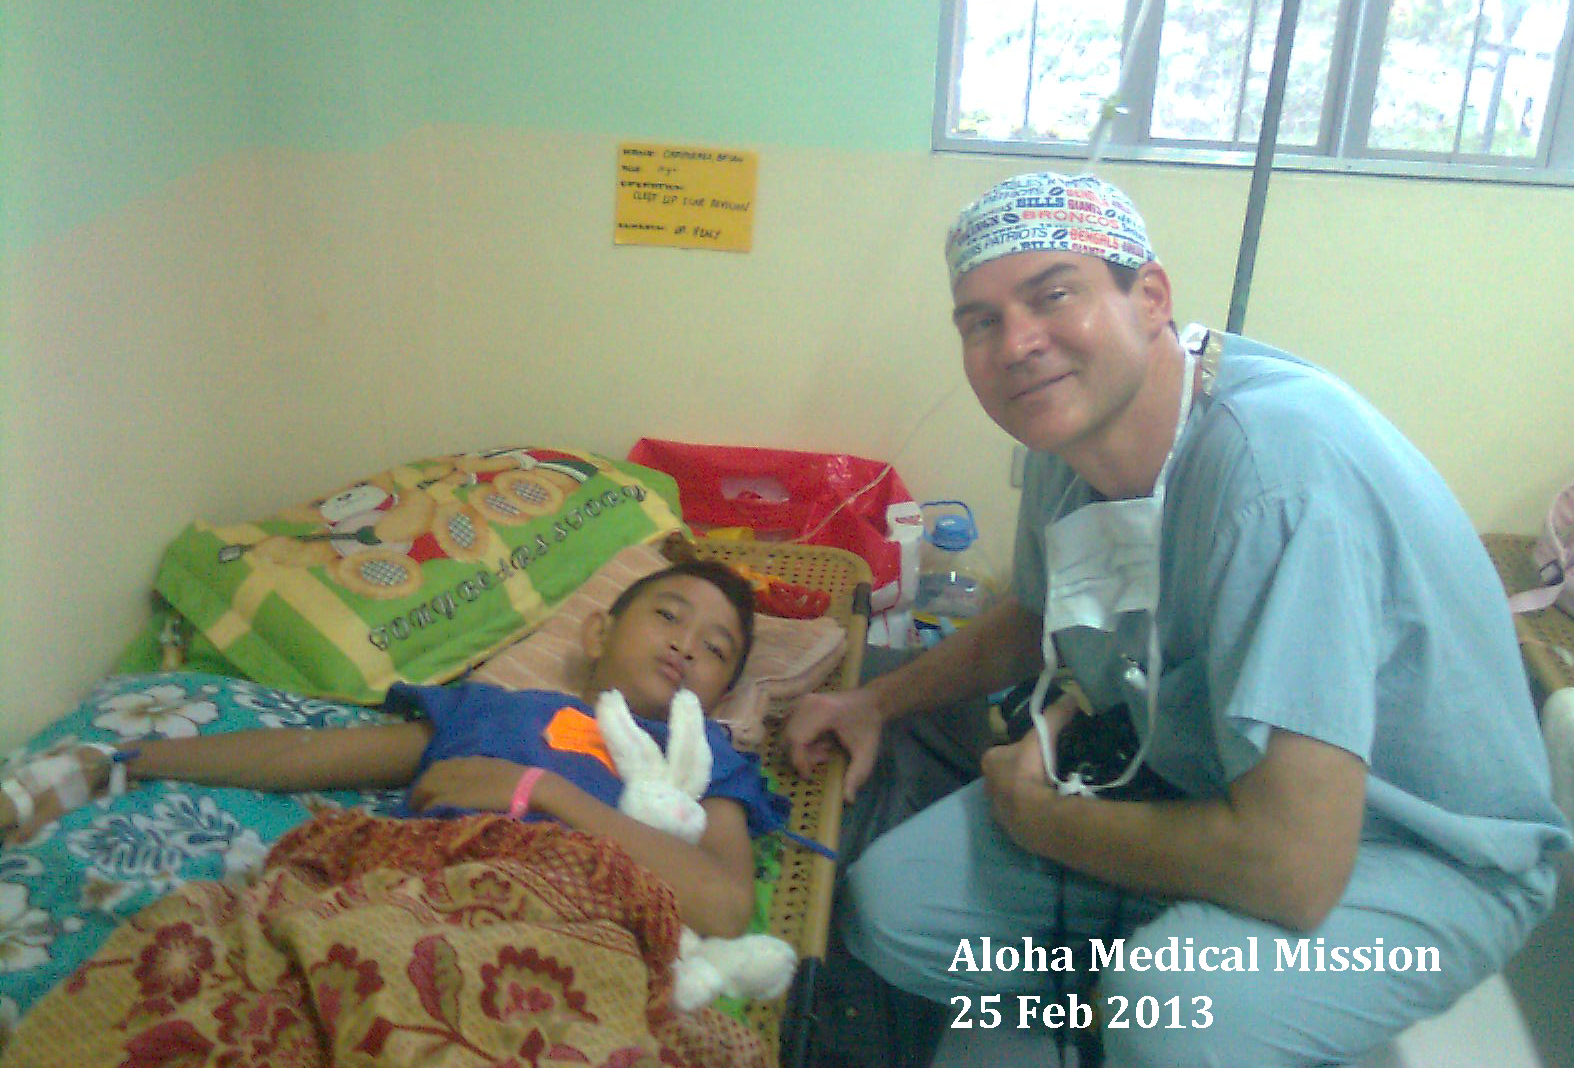 Bryan with Dr. Jeff Healy who operated his cleft lip